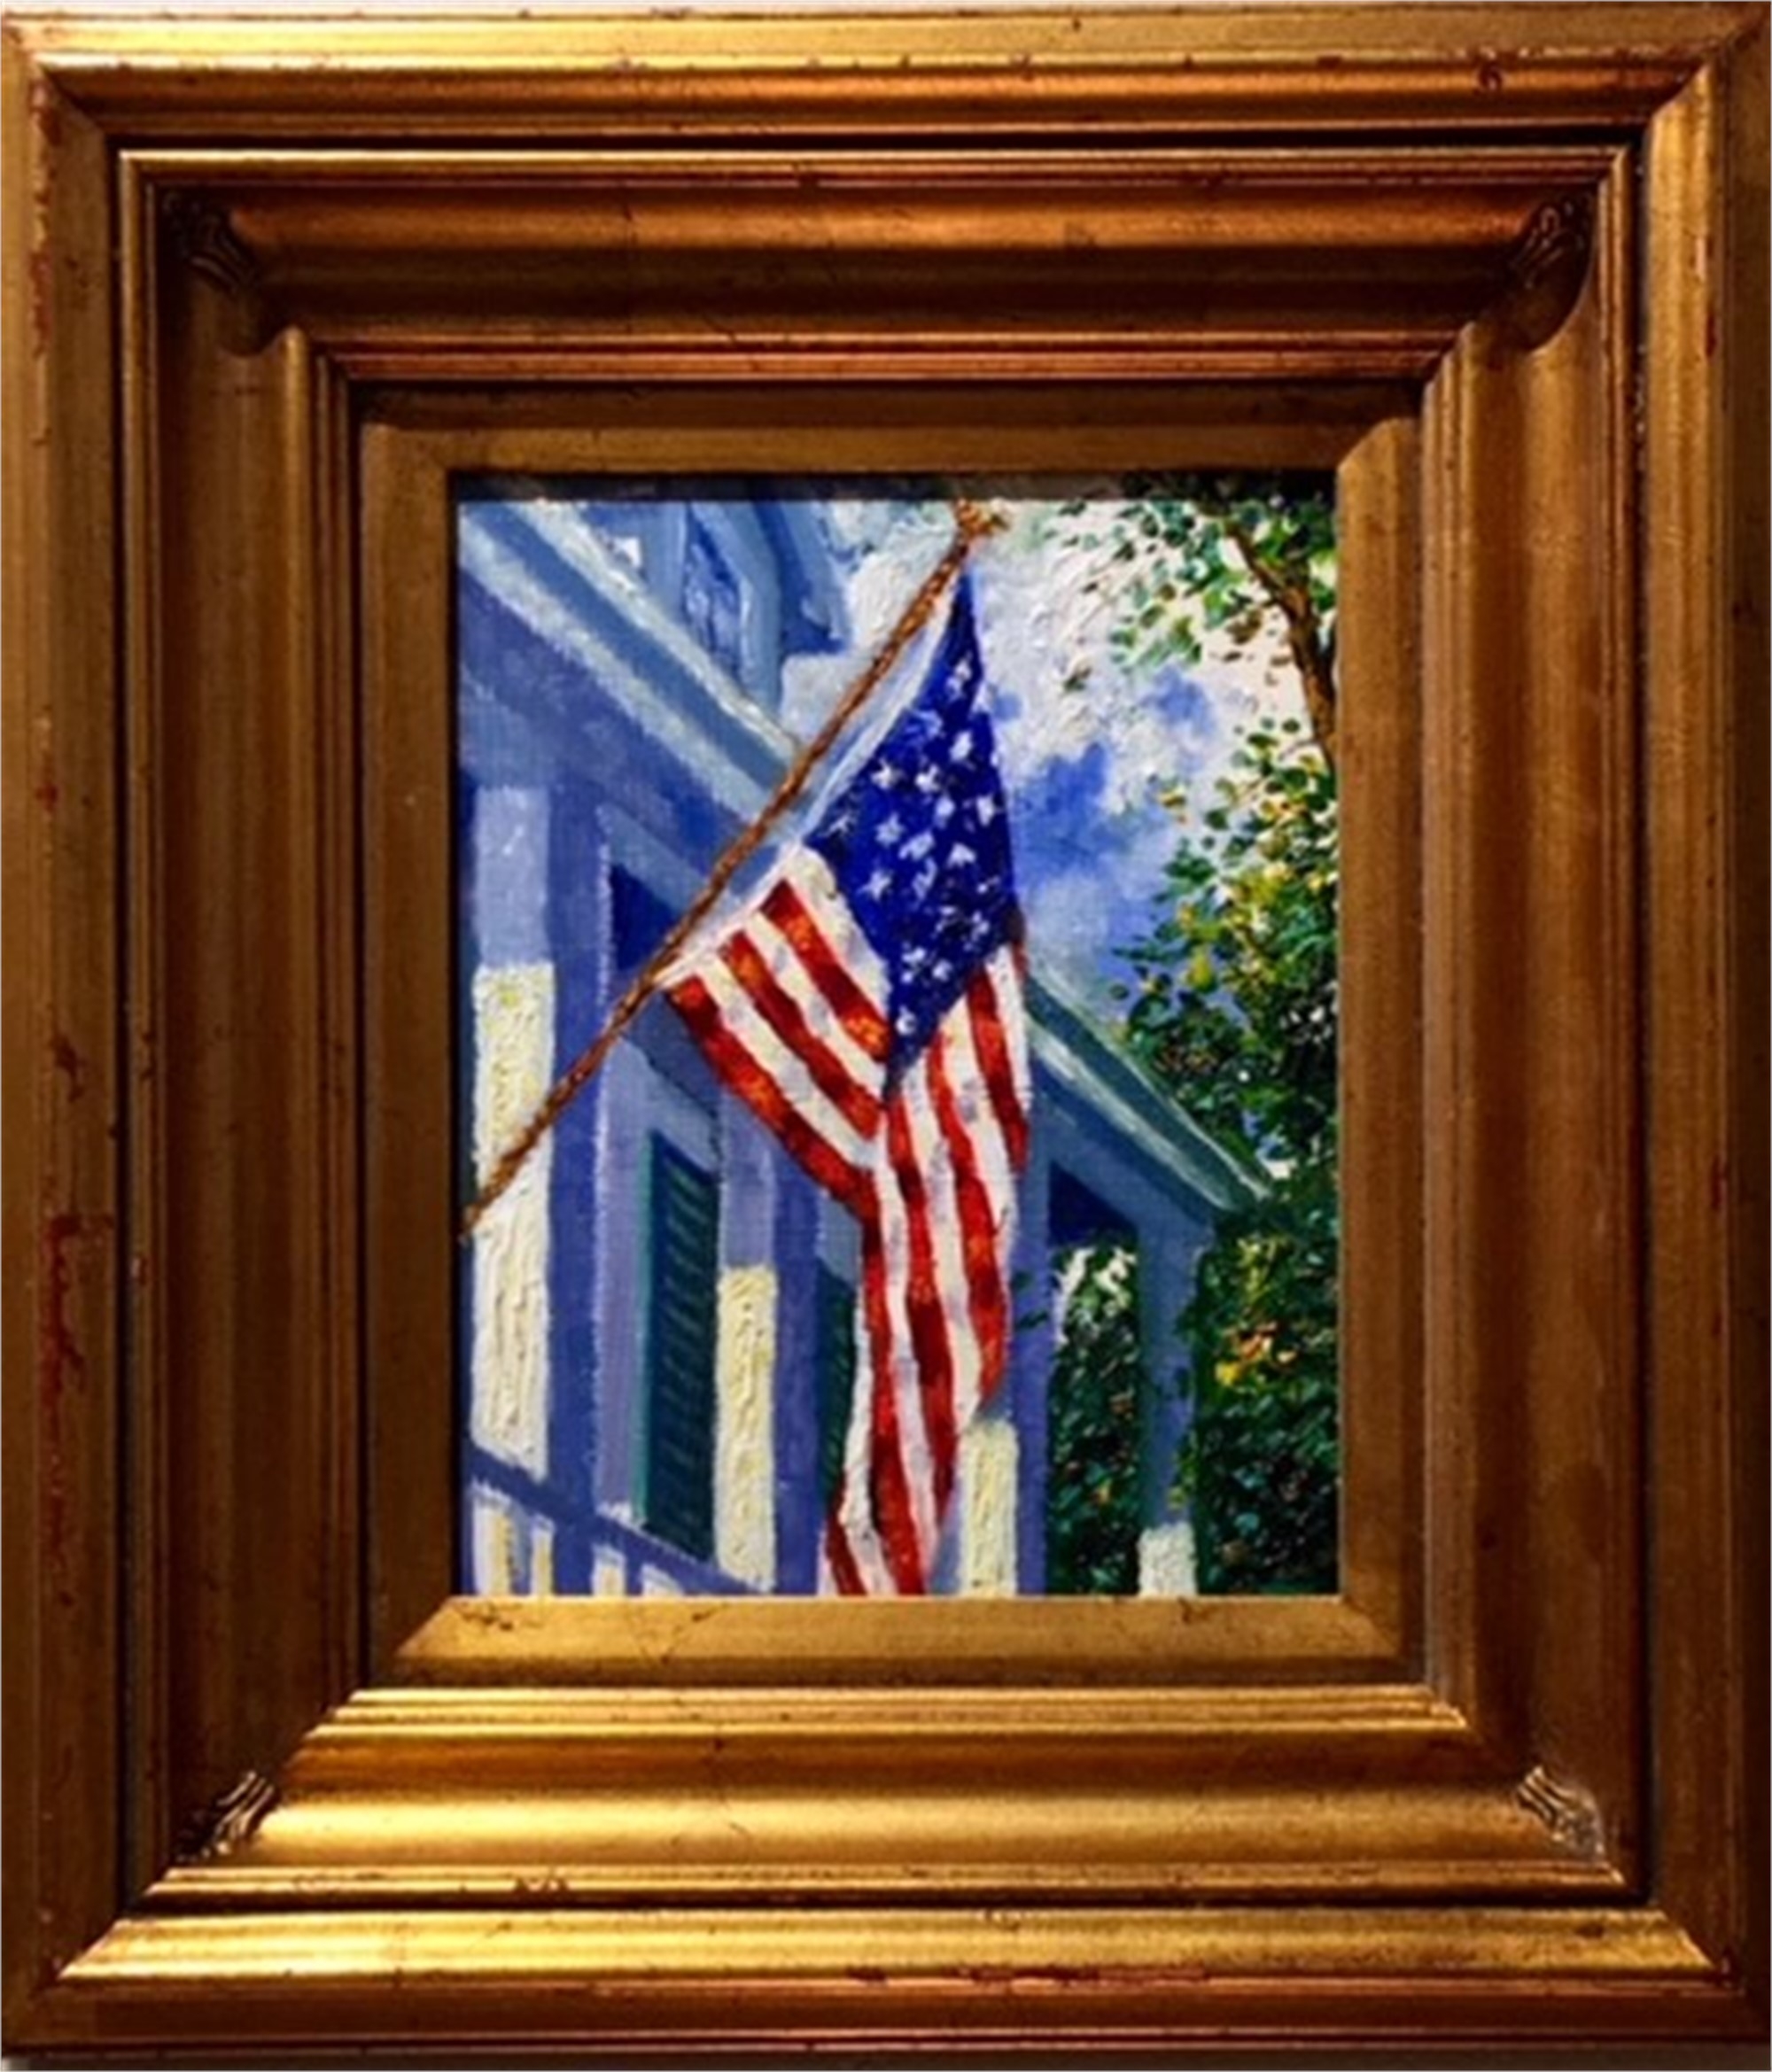 Old Glory by James J. Williams